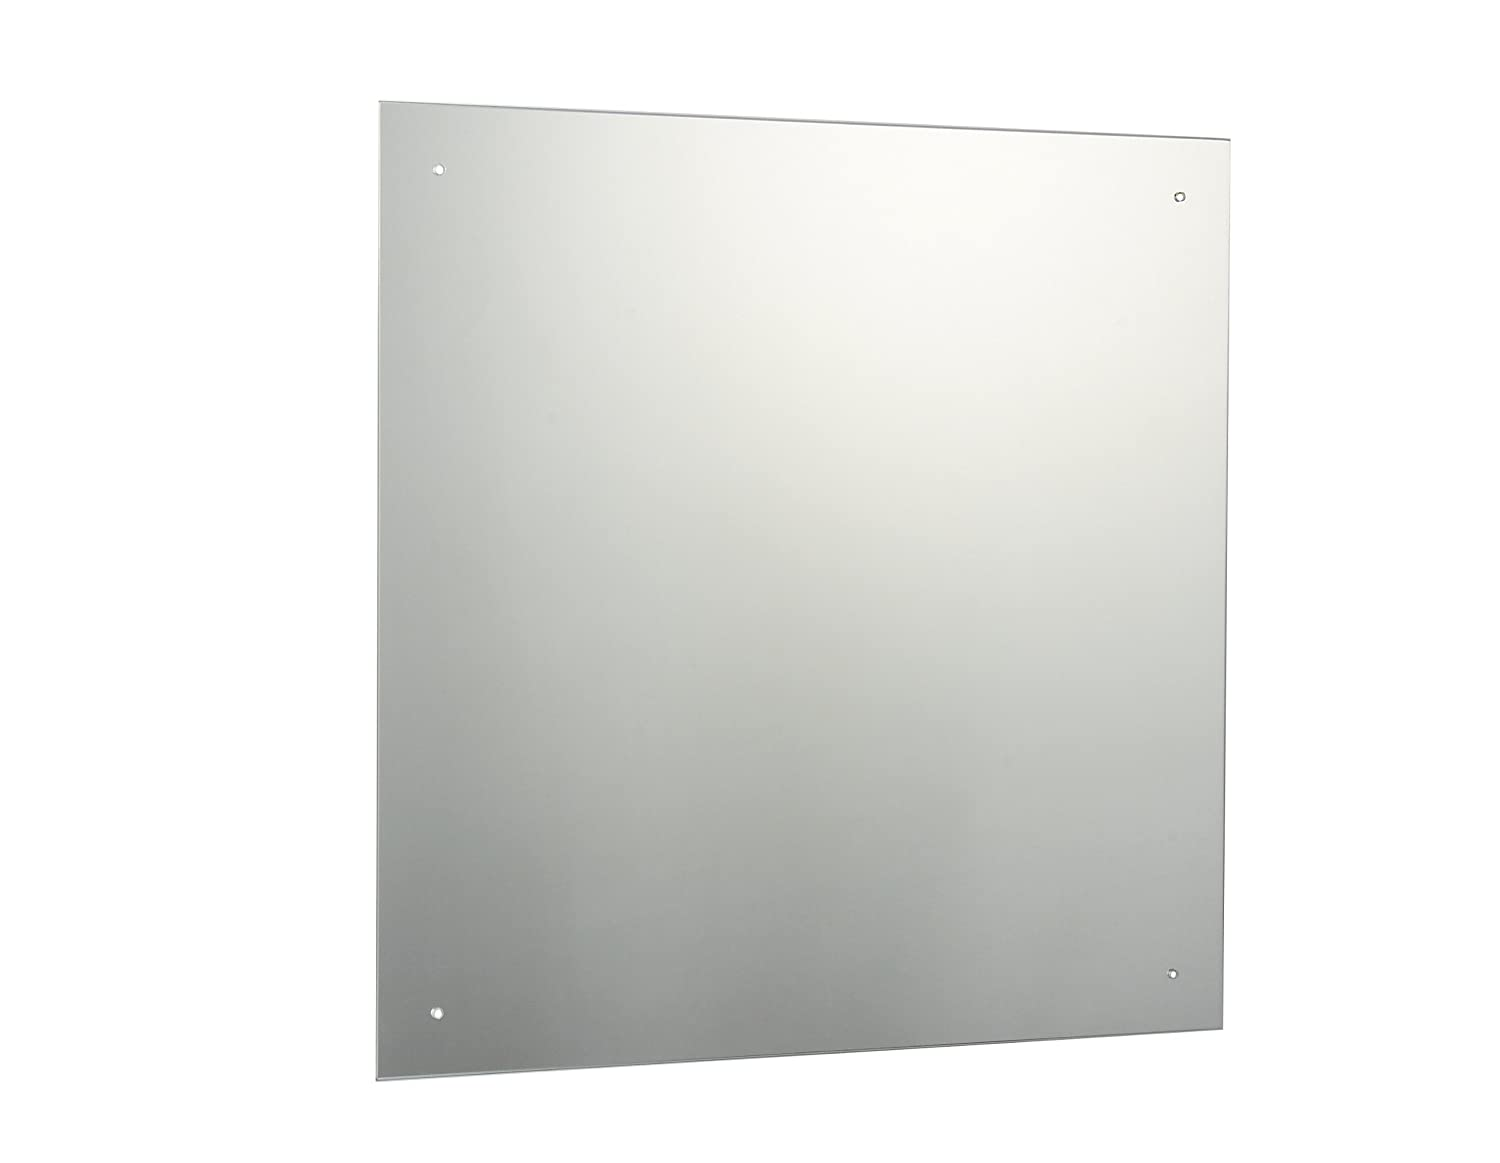 60 x 60cm Rectangle Bathroom Mirror with Drilled Holes & Chrome Cap Wall Hanging Fixing Kit